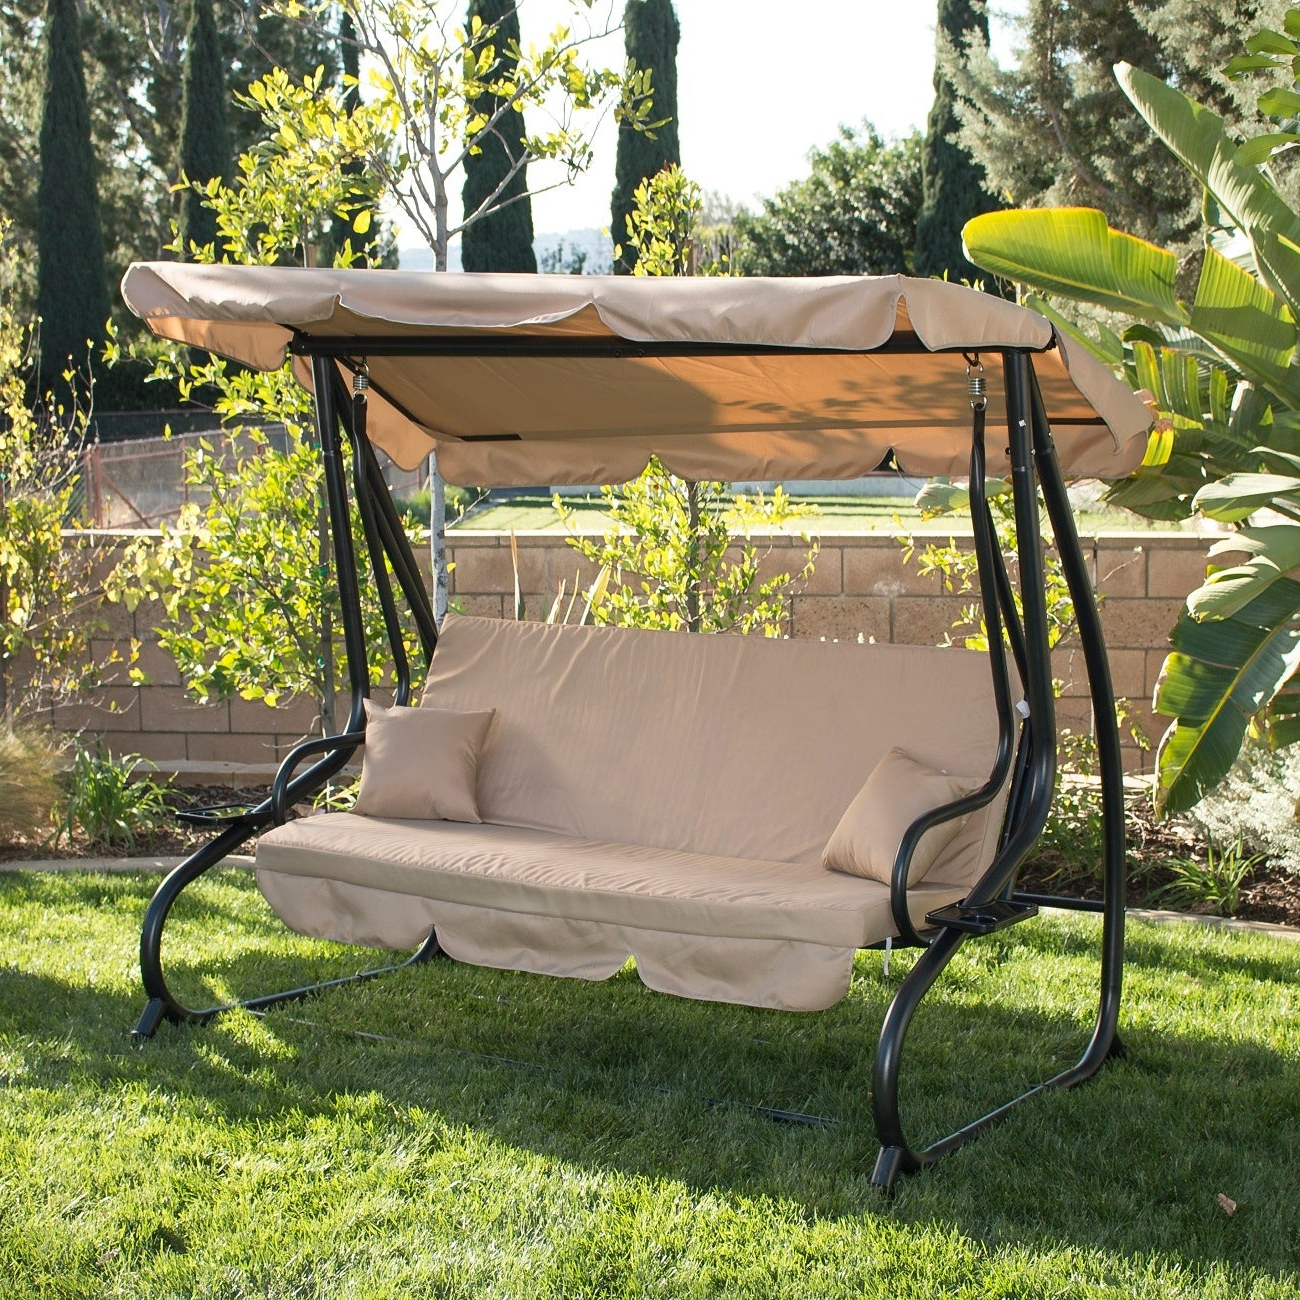 Preferred Canopy Porch Swings For Belleze Outdoor Canopy Porch Swing Bed Hammock Tilt Canopy Sun Shade Steel  Frame (View 16 of 25)